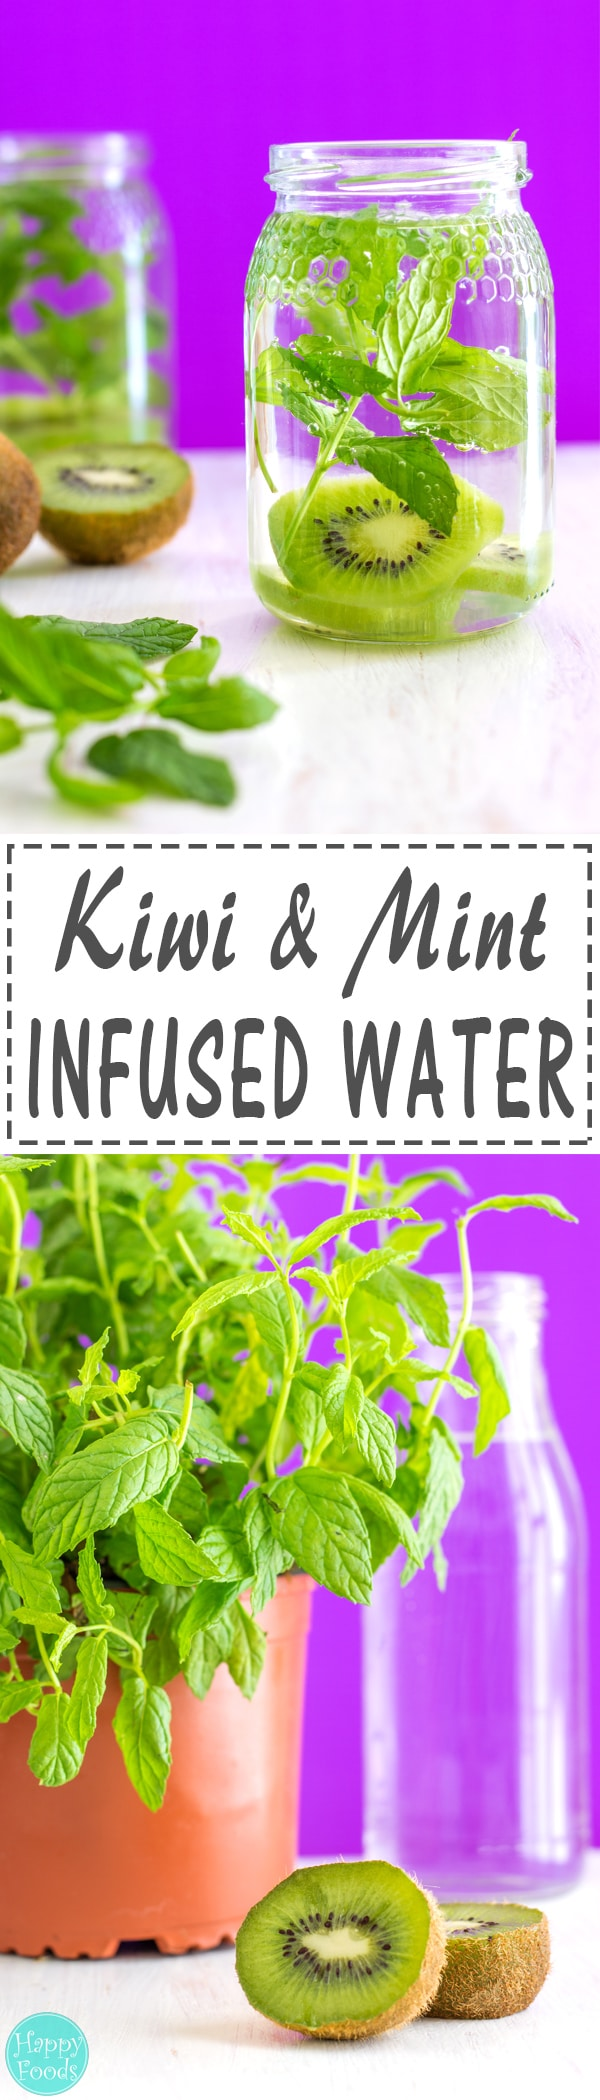 Kiwi and Mint Infused Water Recipe + 5 Tips for perfect Infused Water - Perfect for hydrating on hot summer days! Naturally flavored drink